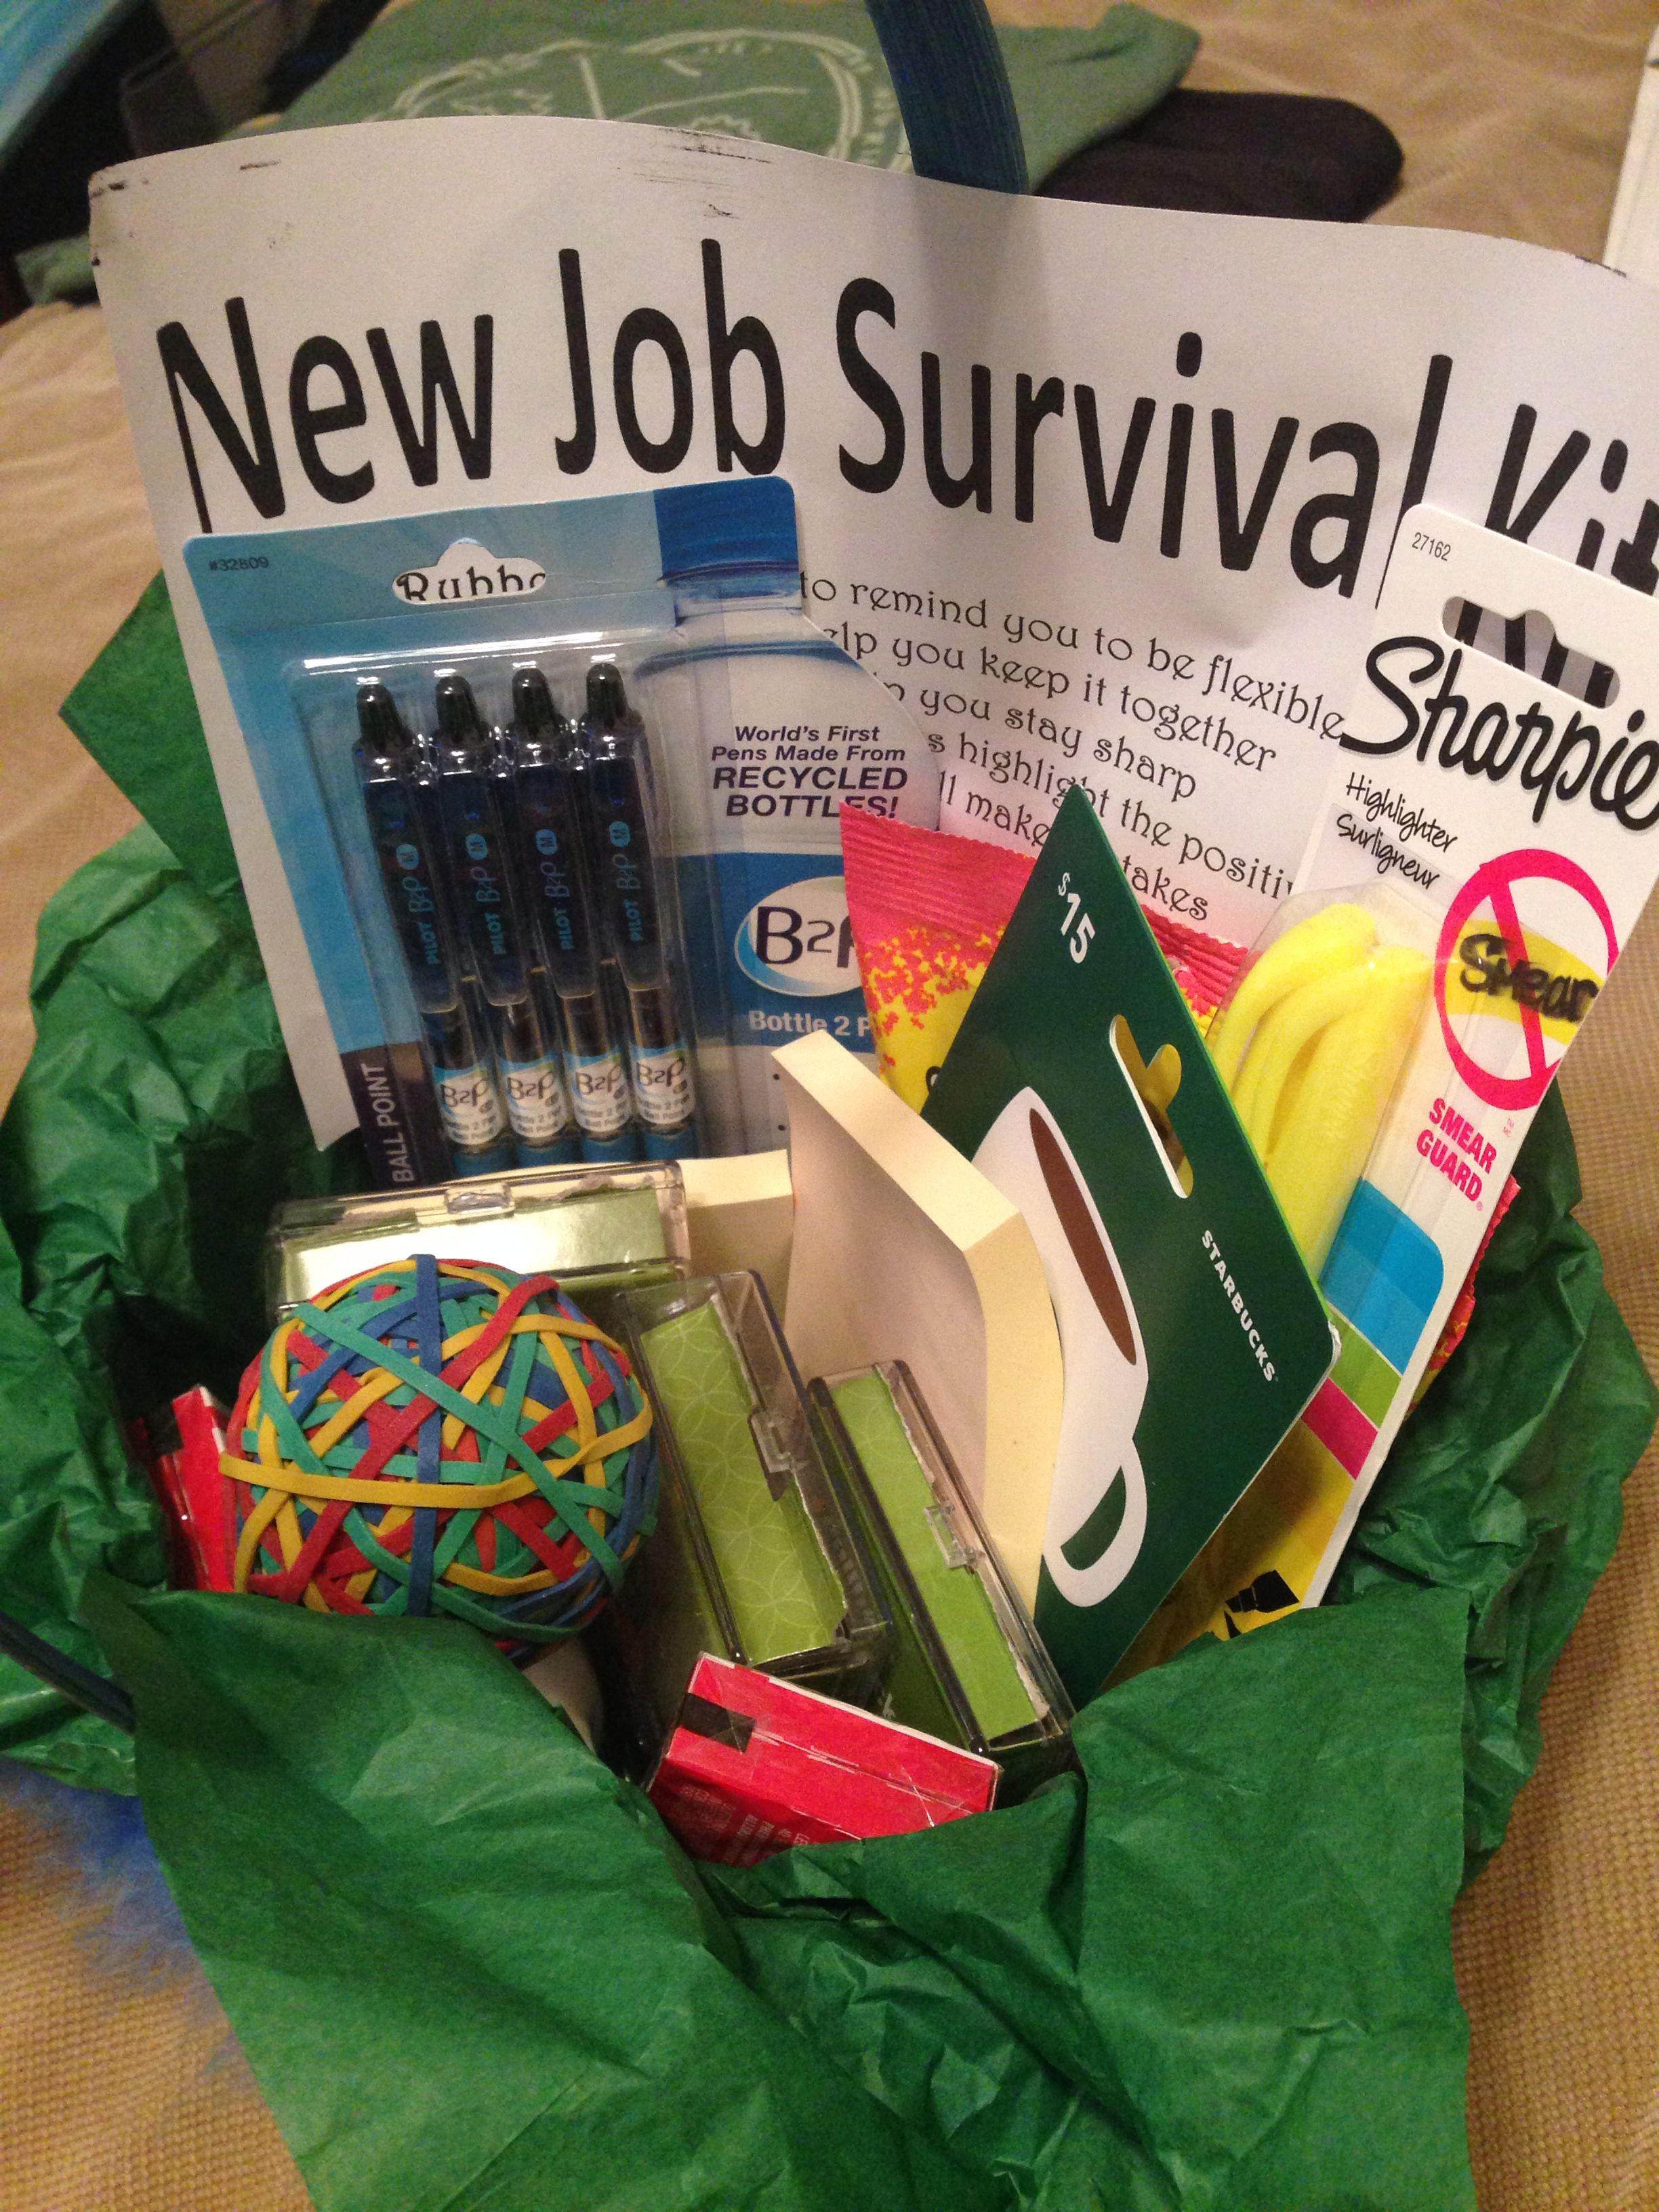 Creative Officewear Made Totally By Office Supply: New Job Gift, New Job Survival